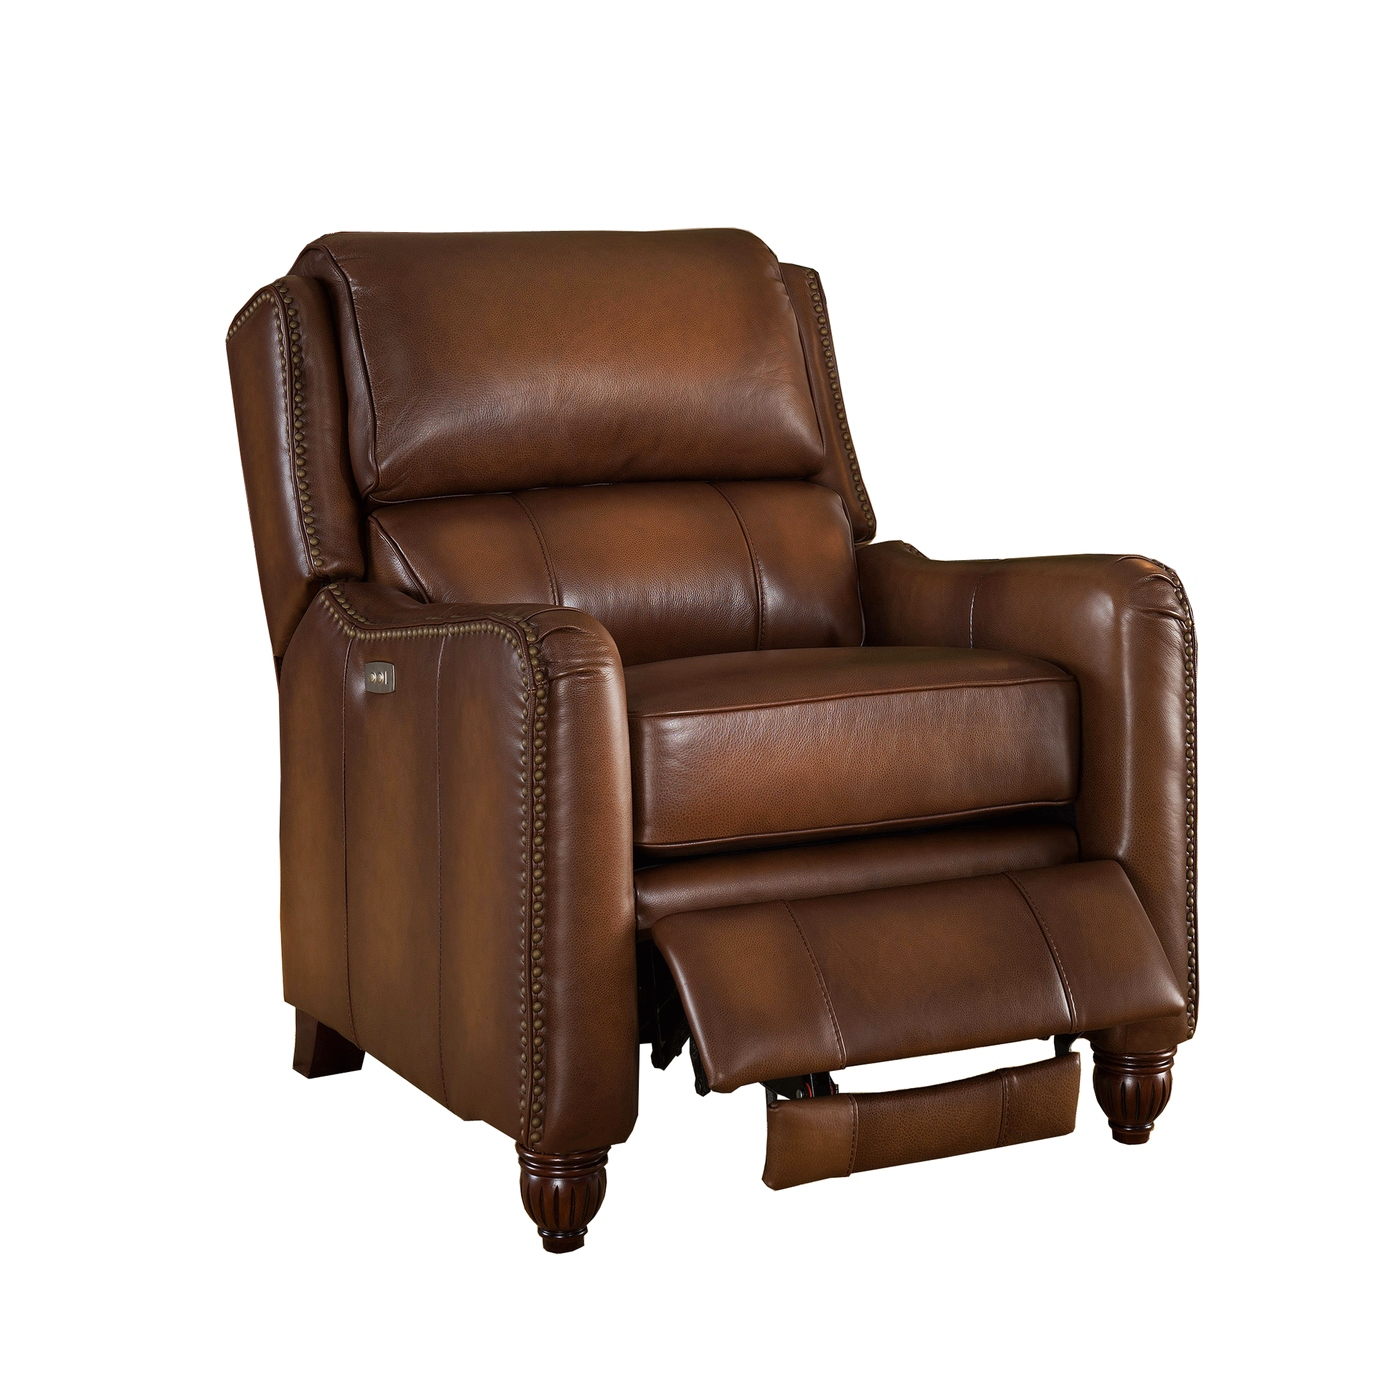 brown leather recliner chair folding concert lawn chairs concord traditional top grain powered